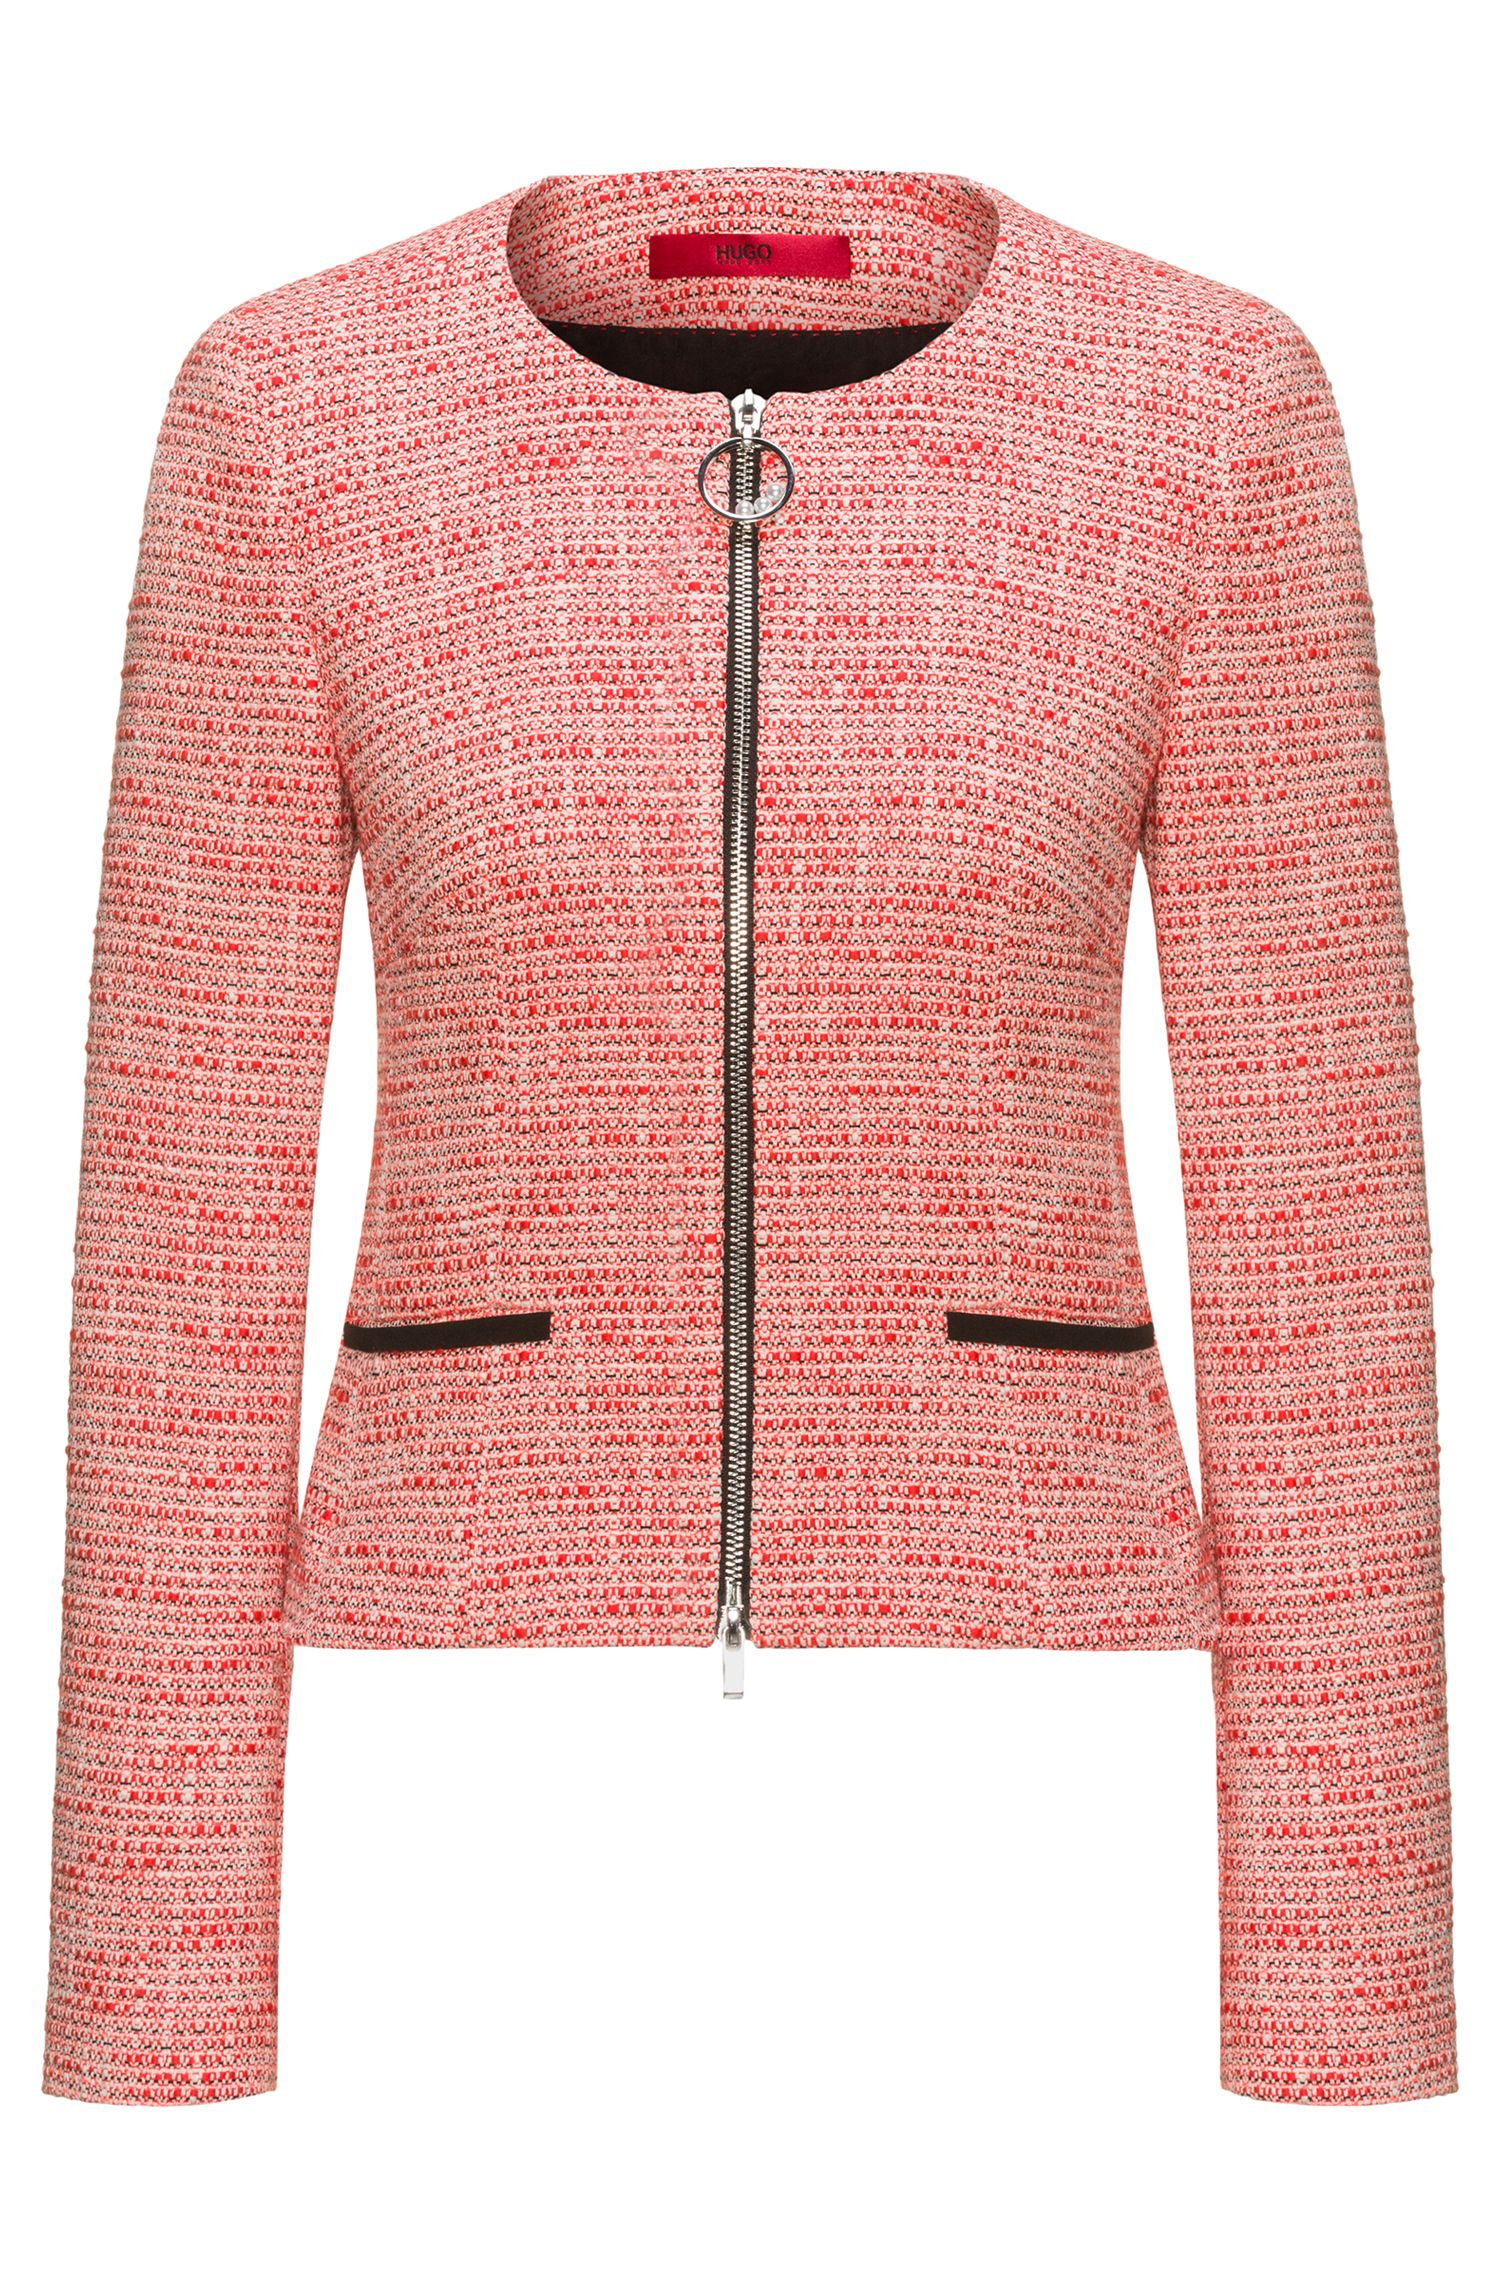 Veste zippée Regular Fit en tweed de coton mélangé